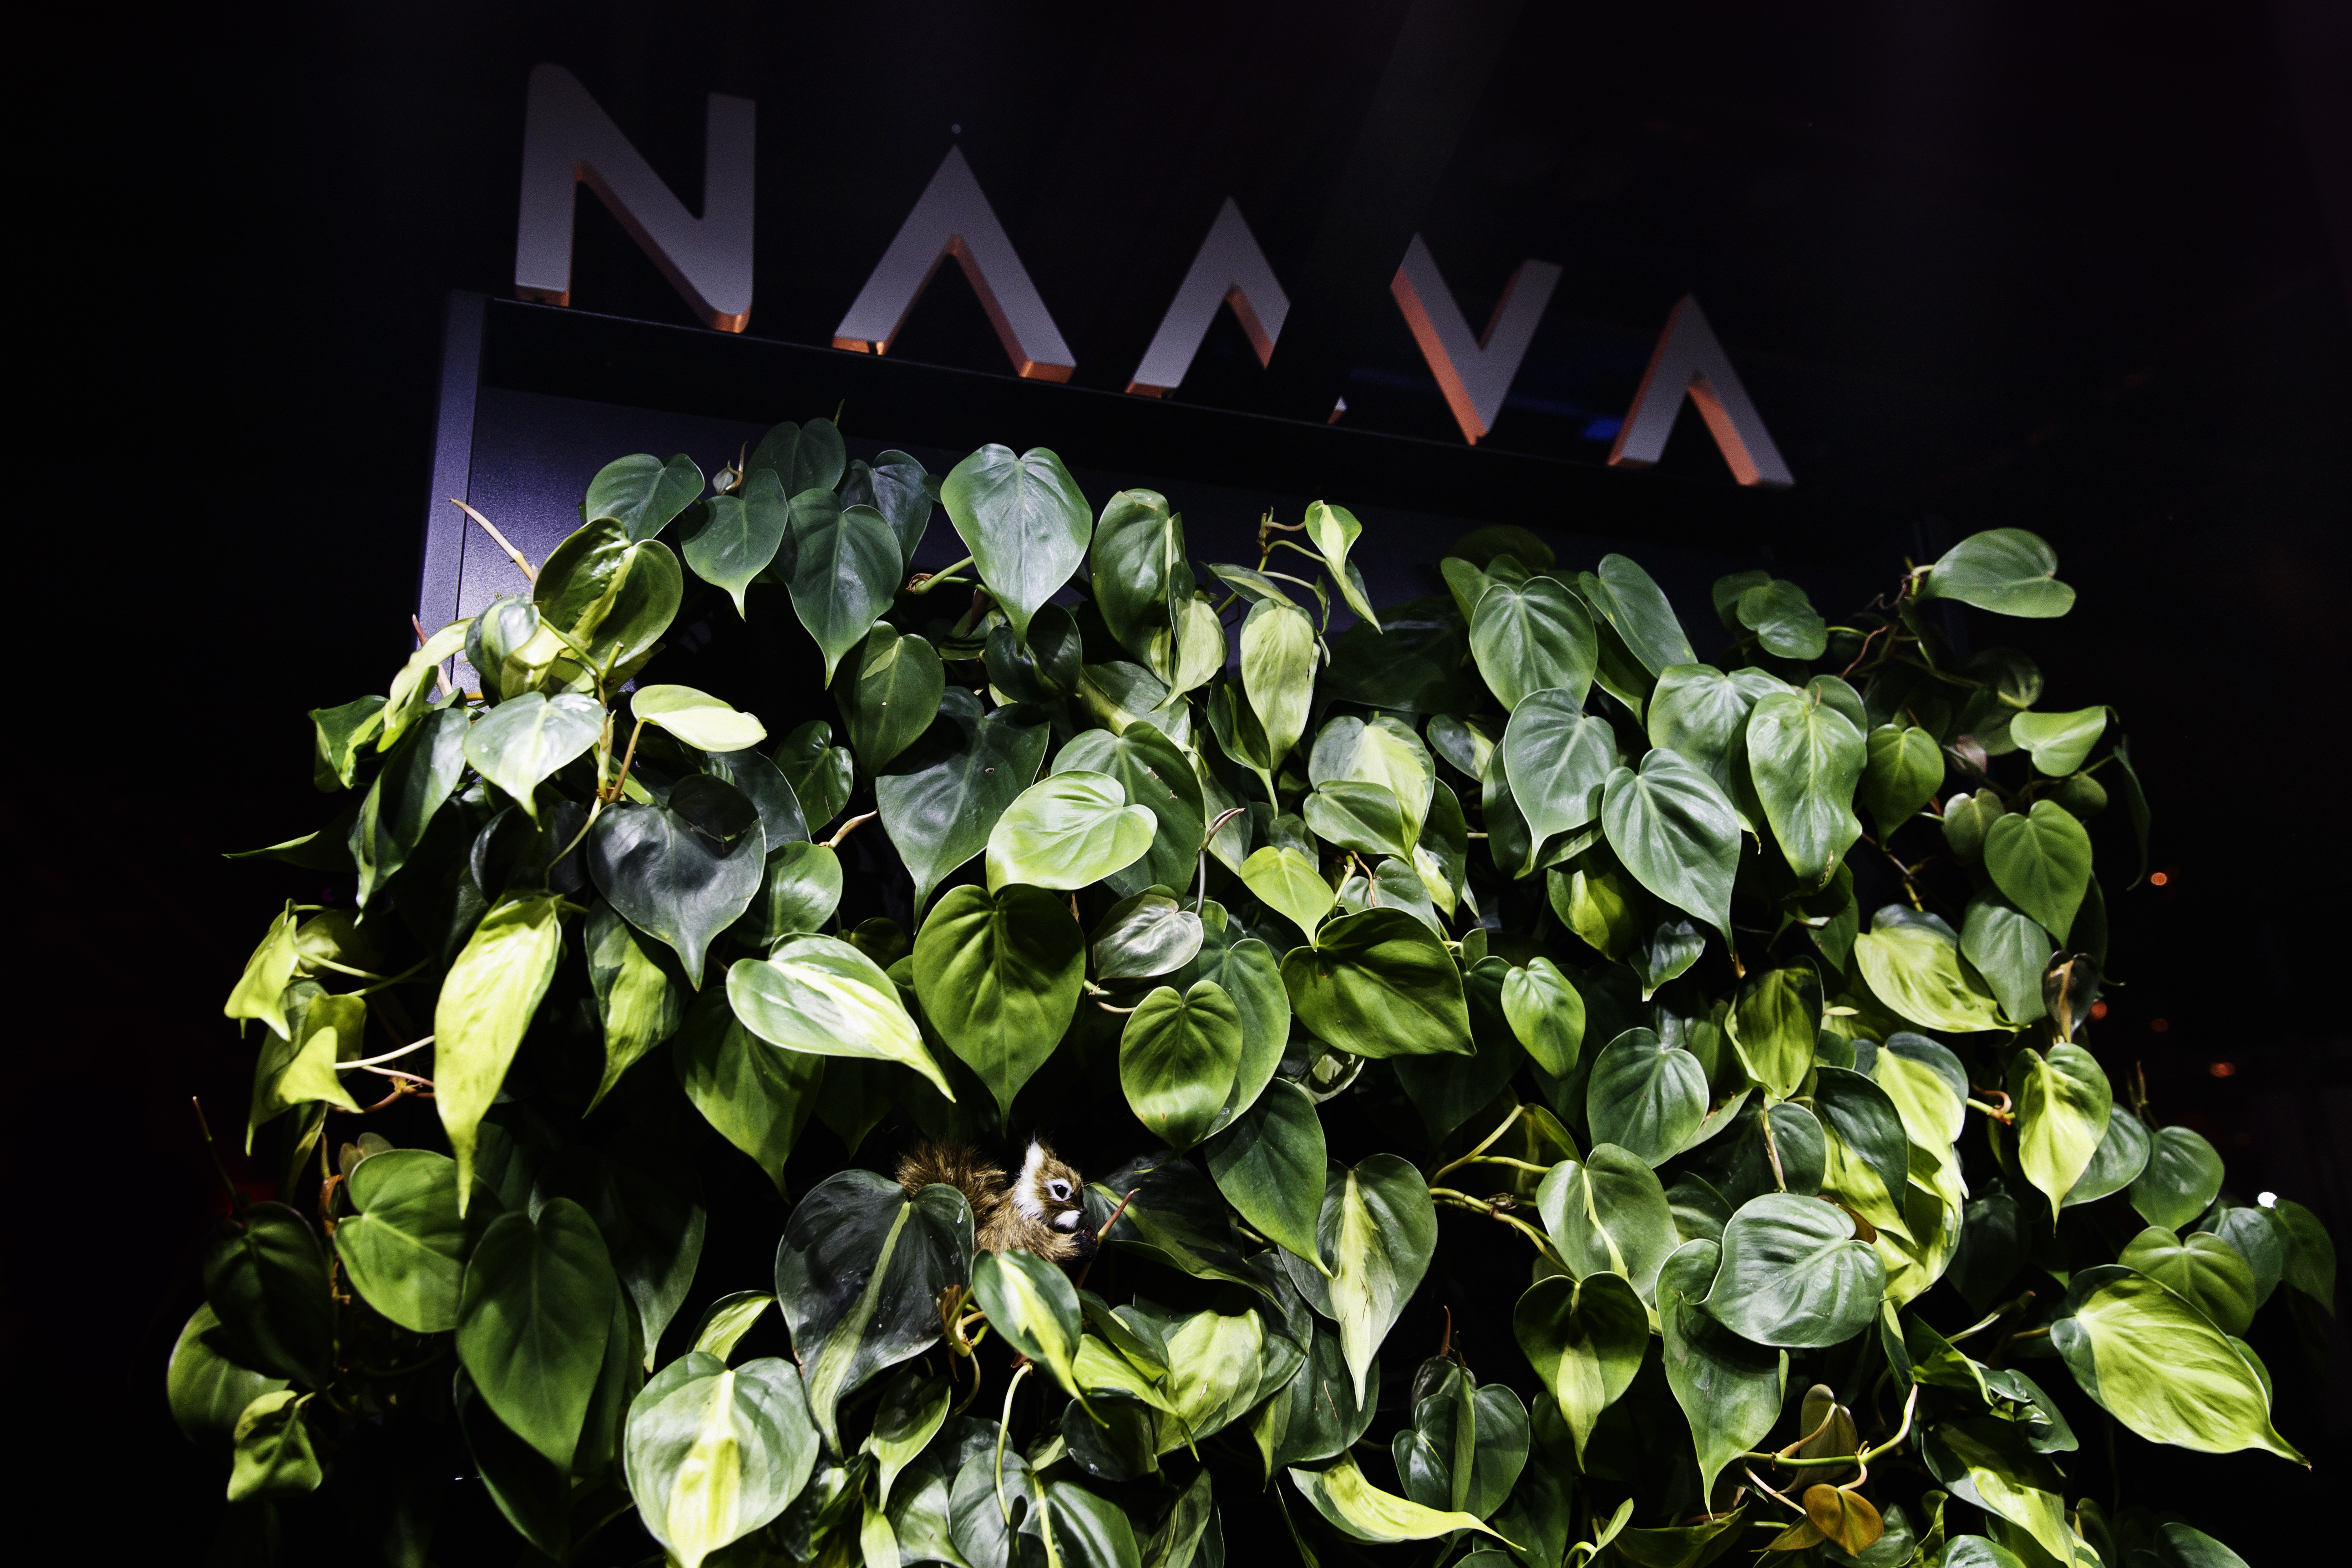 All the buzz making you feel nauseous? Finnish Naava's smart green wall helps Slush-visitors find some fresh air. Can you spot the squirrel?